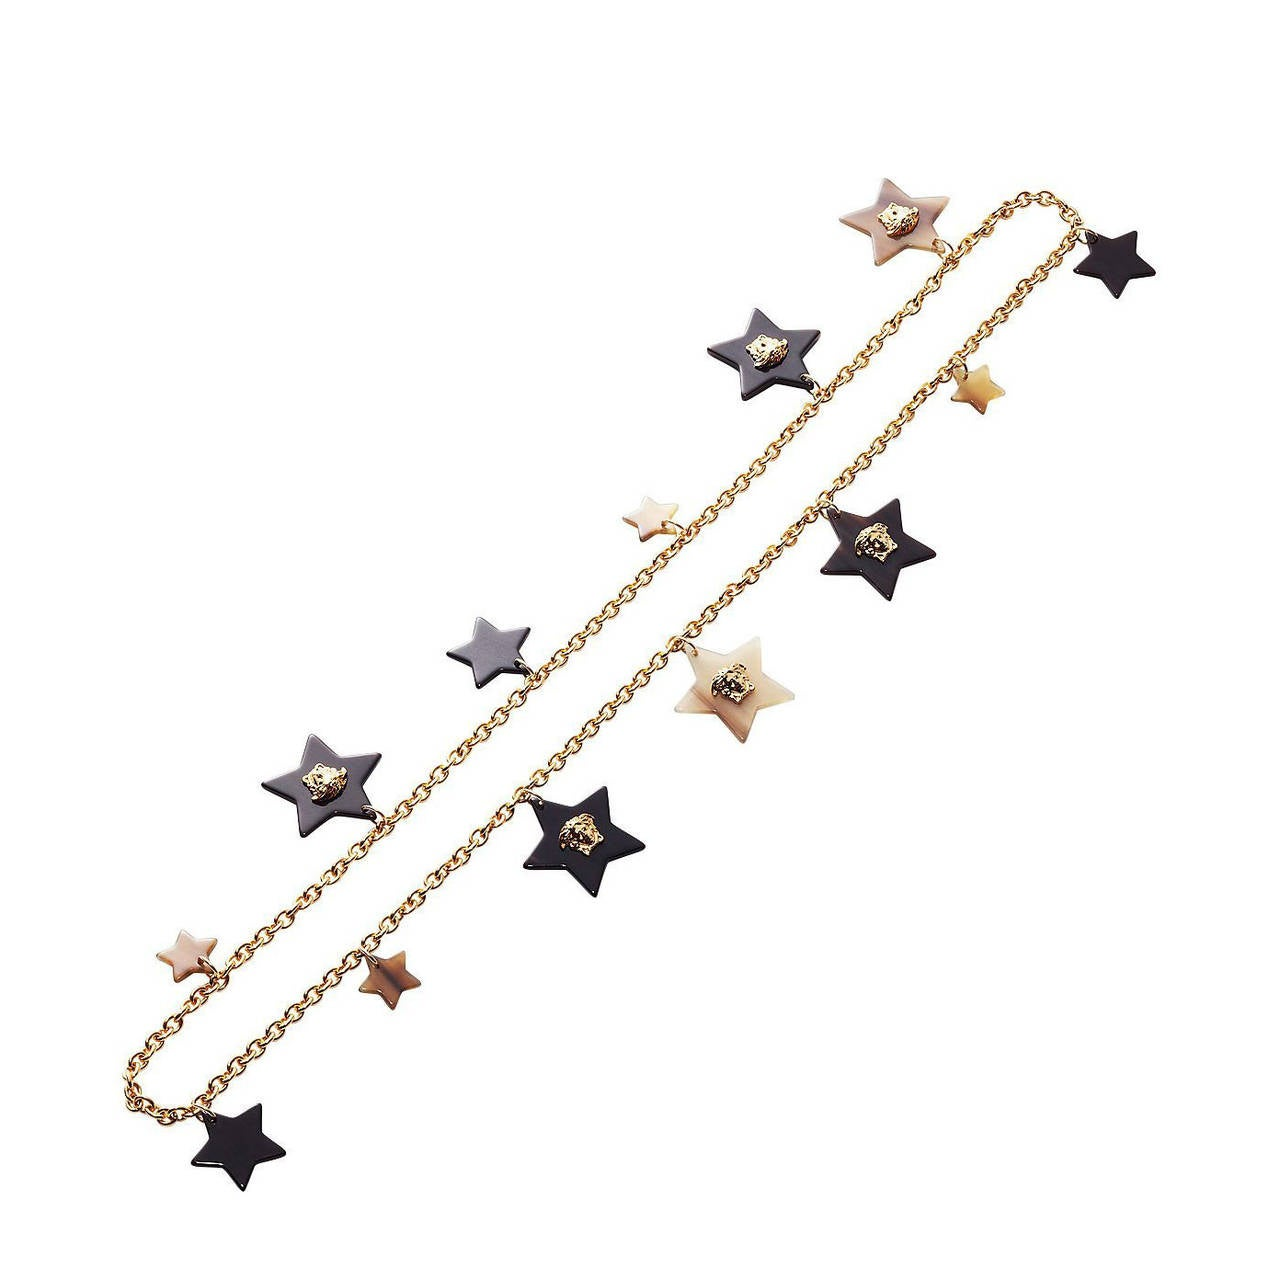 New Versace Gold Star Medusa Charm Chain Necklace 1